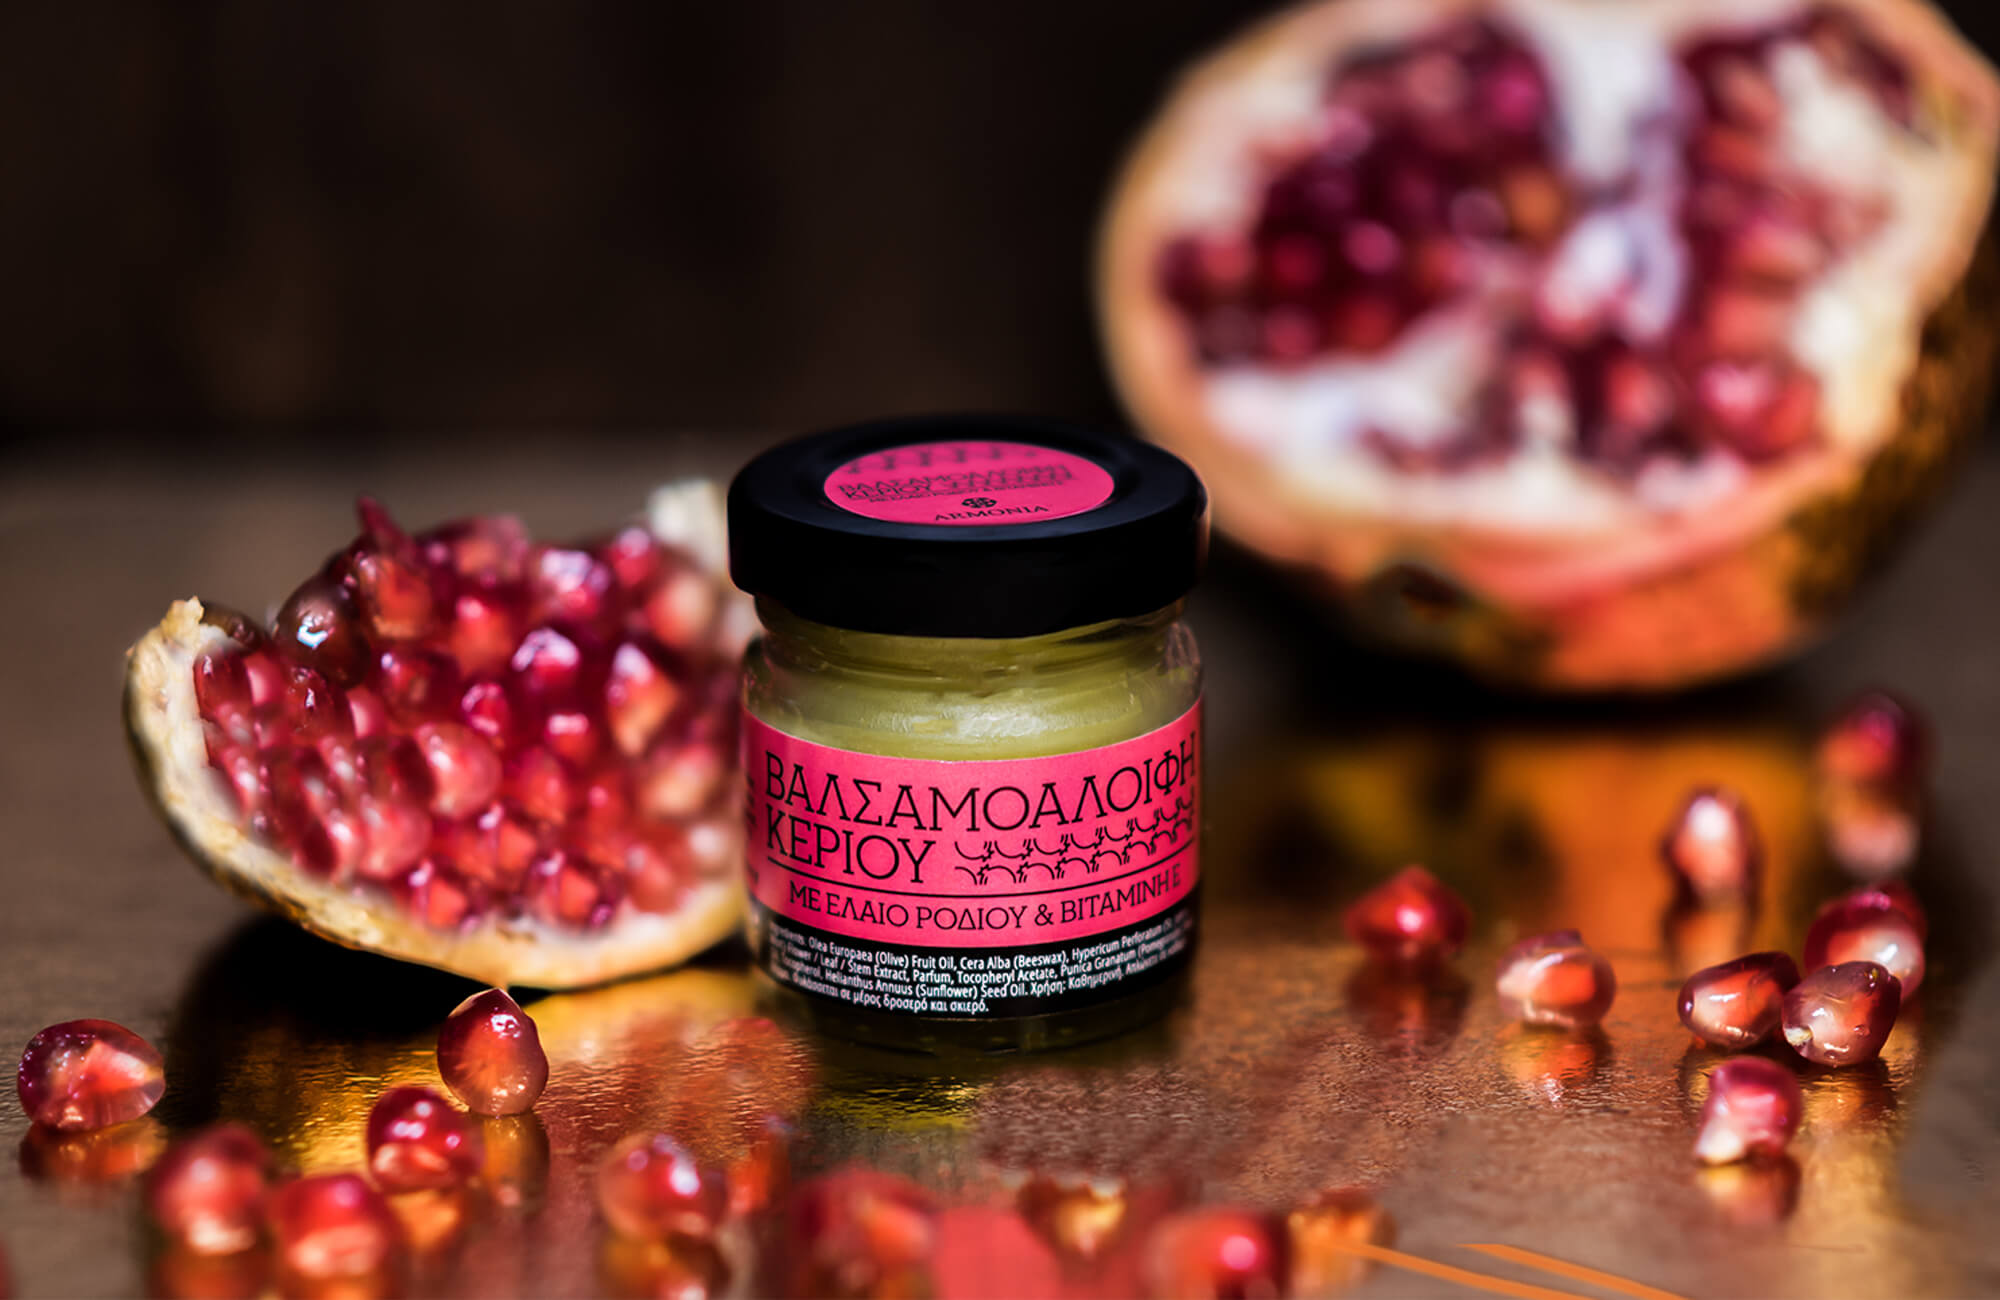 St. John's wort oil wax cream pomegranate oil vitamin E natural cosmetics 100 made in Greece parabens sls